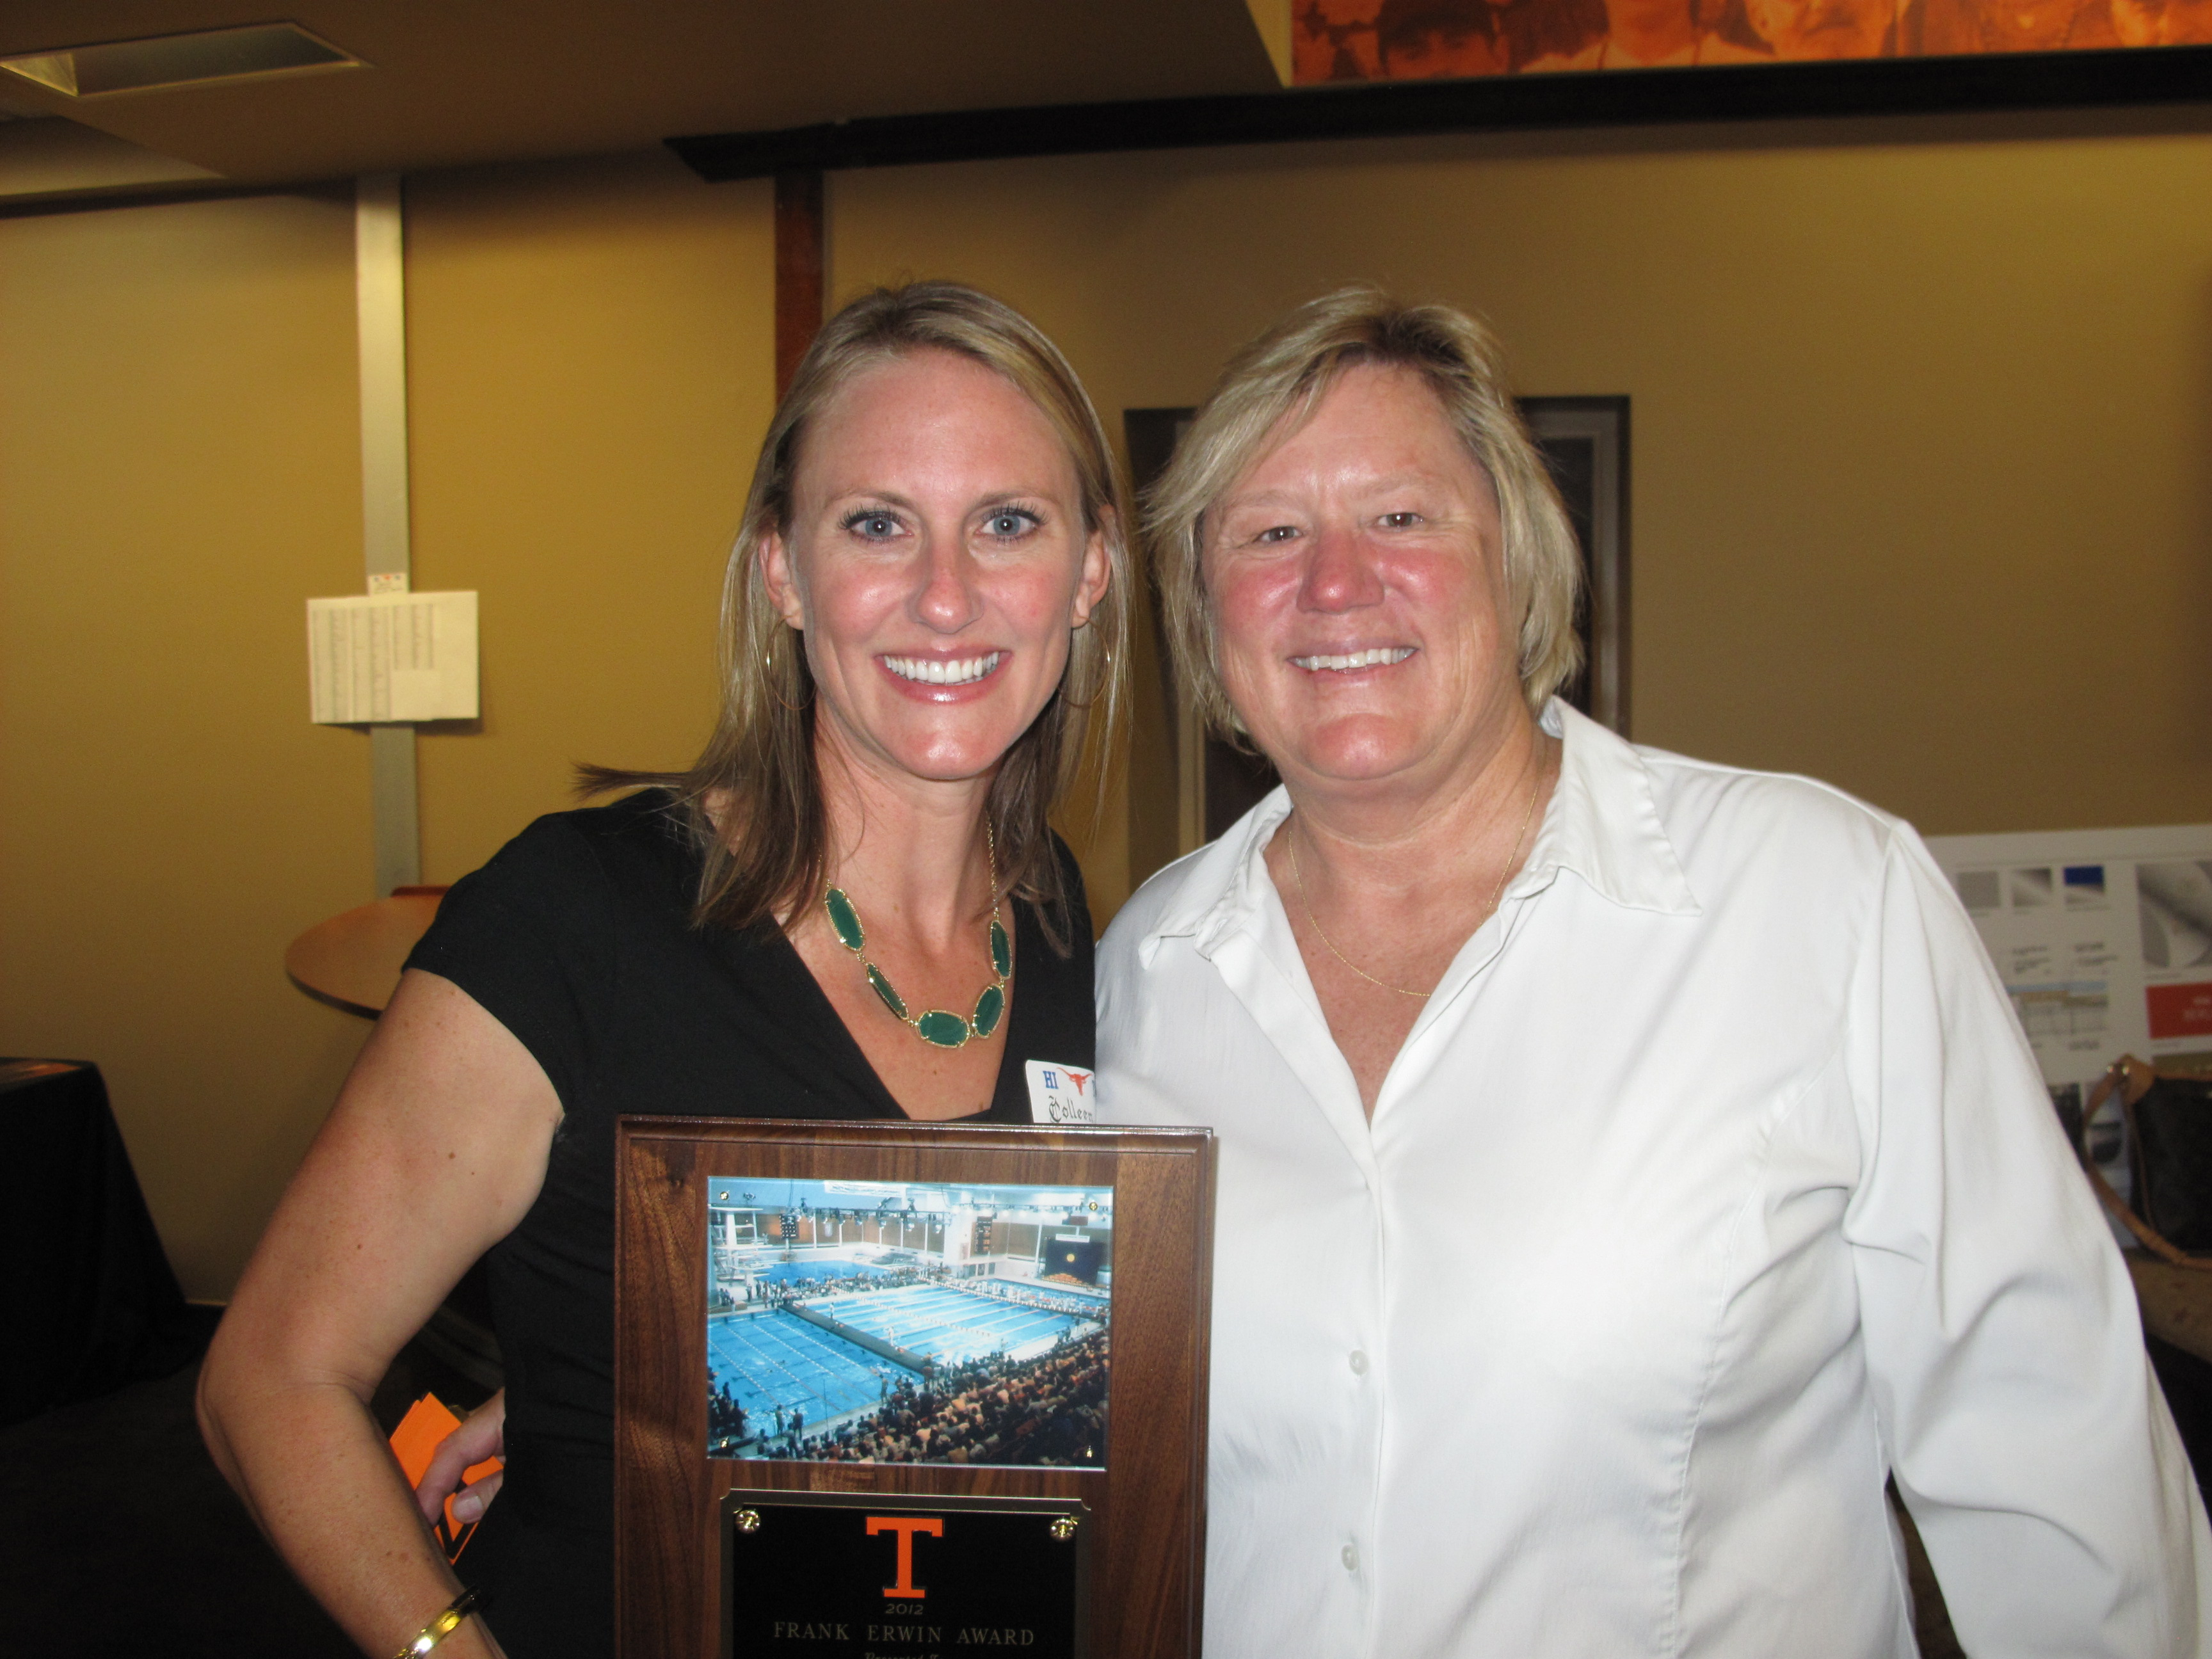 2012 WETS Banquet and Frank Erwin Awards